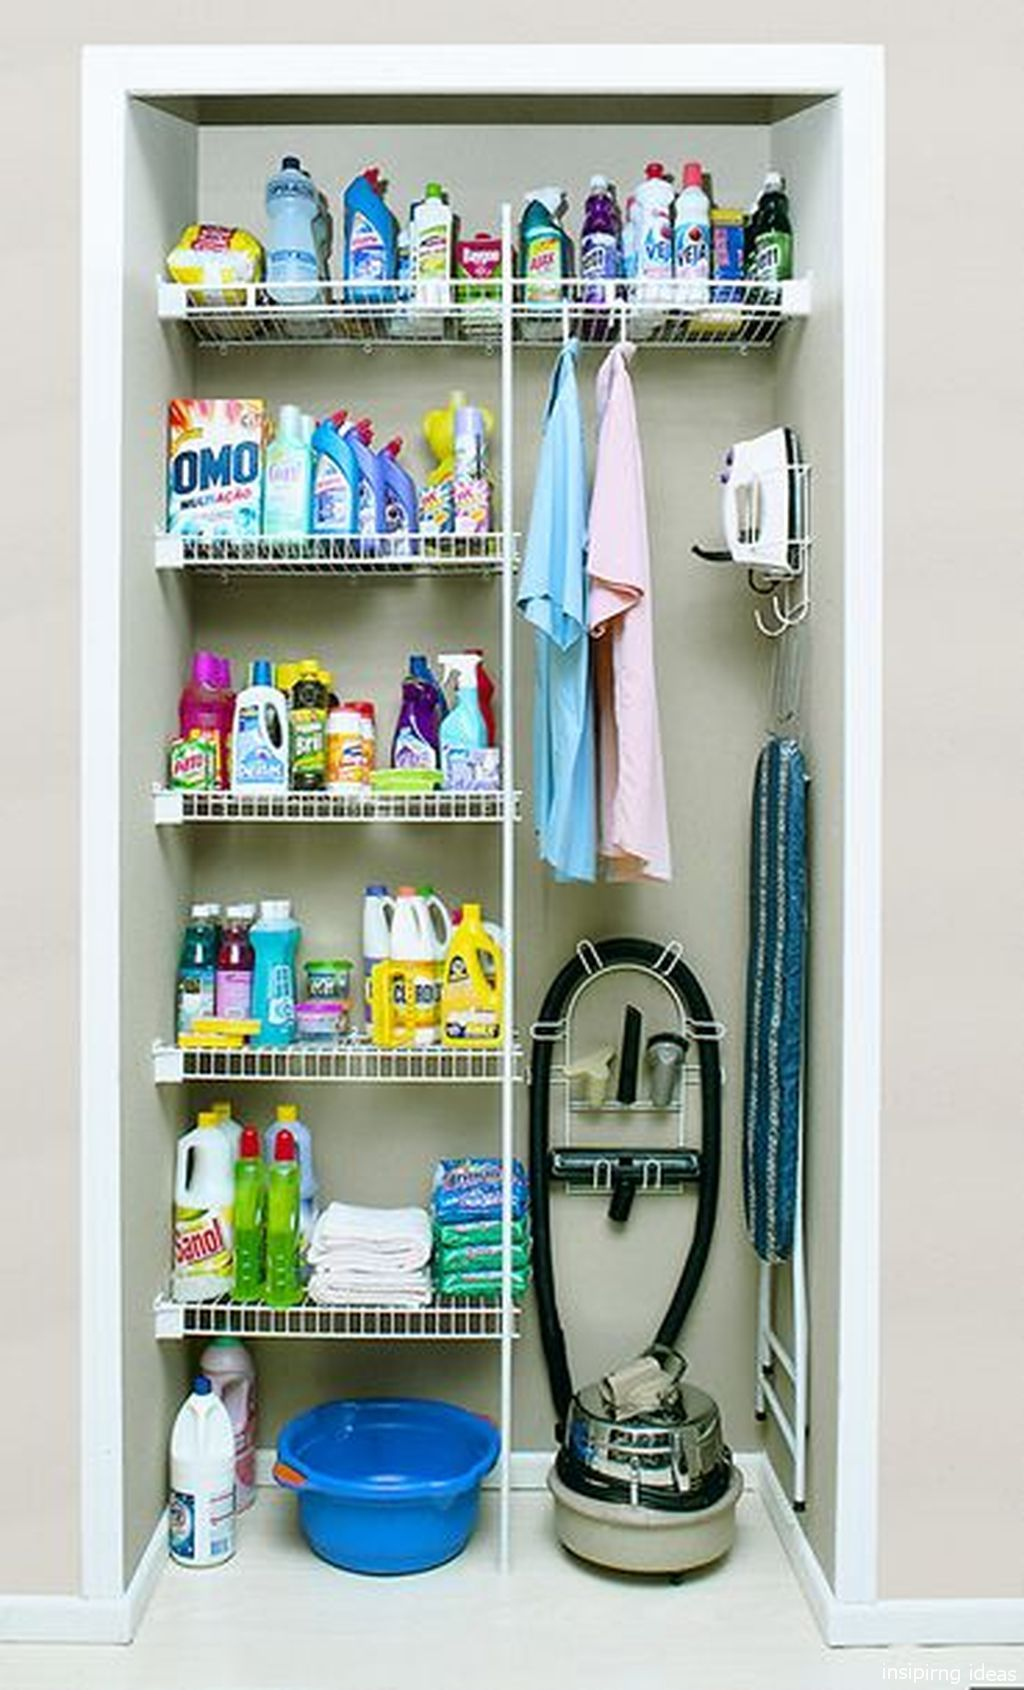 20 Awesome Ideas For Utility Closet Laundry Room Design Cleaning Closet Organization Laundry Room Organization